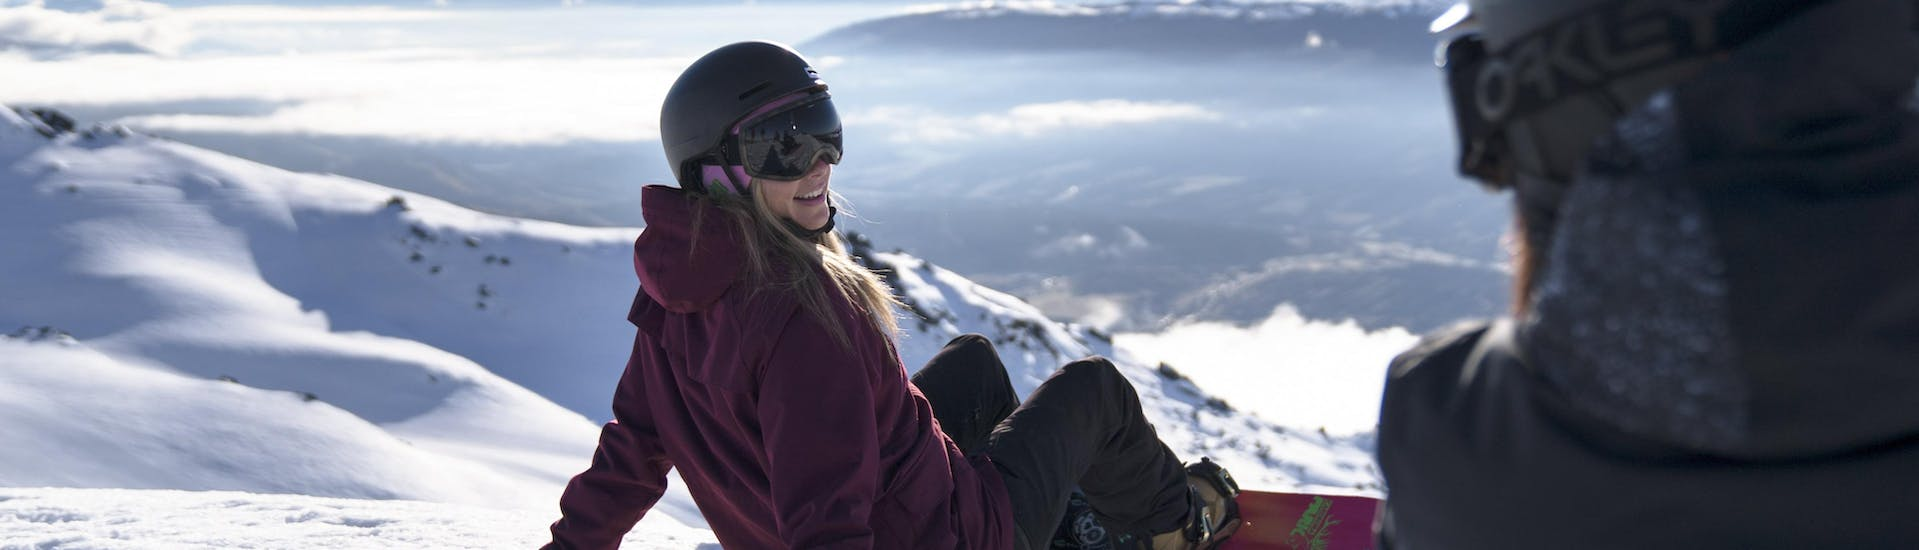 Snowboarding Lessons for Adults - First Timer Package